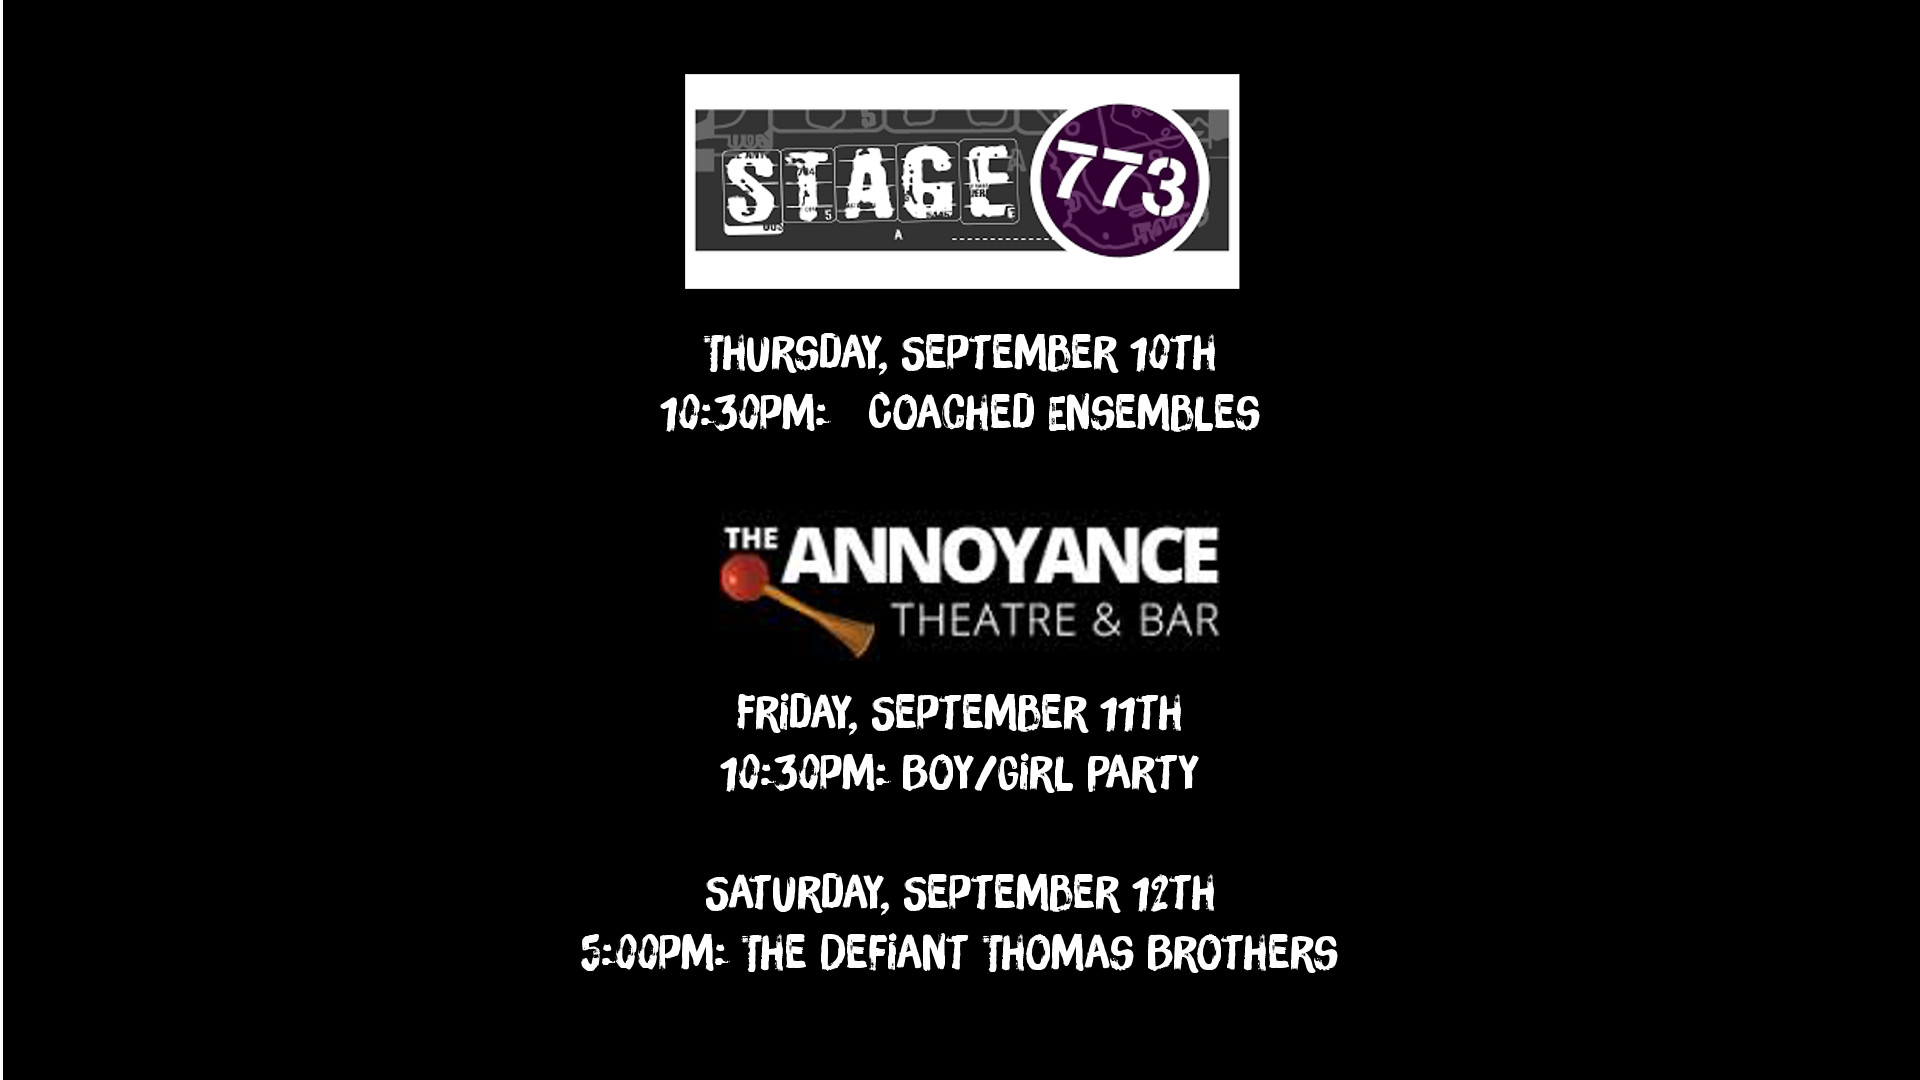 This Weekend at Stage 773 & The Annoyance